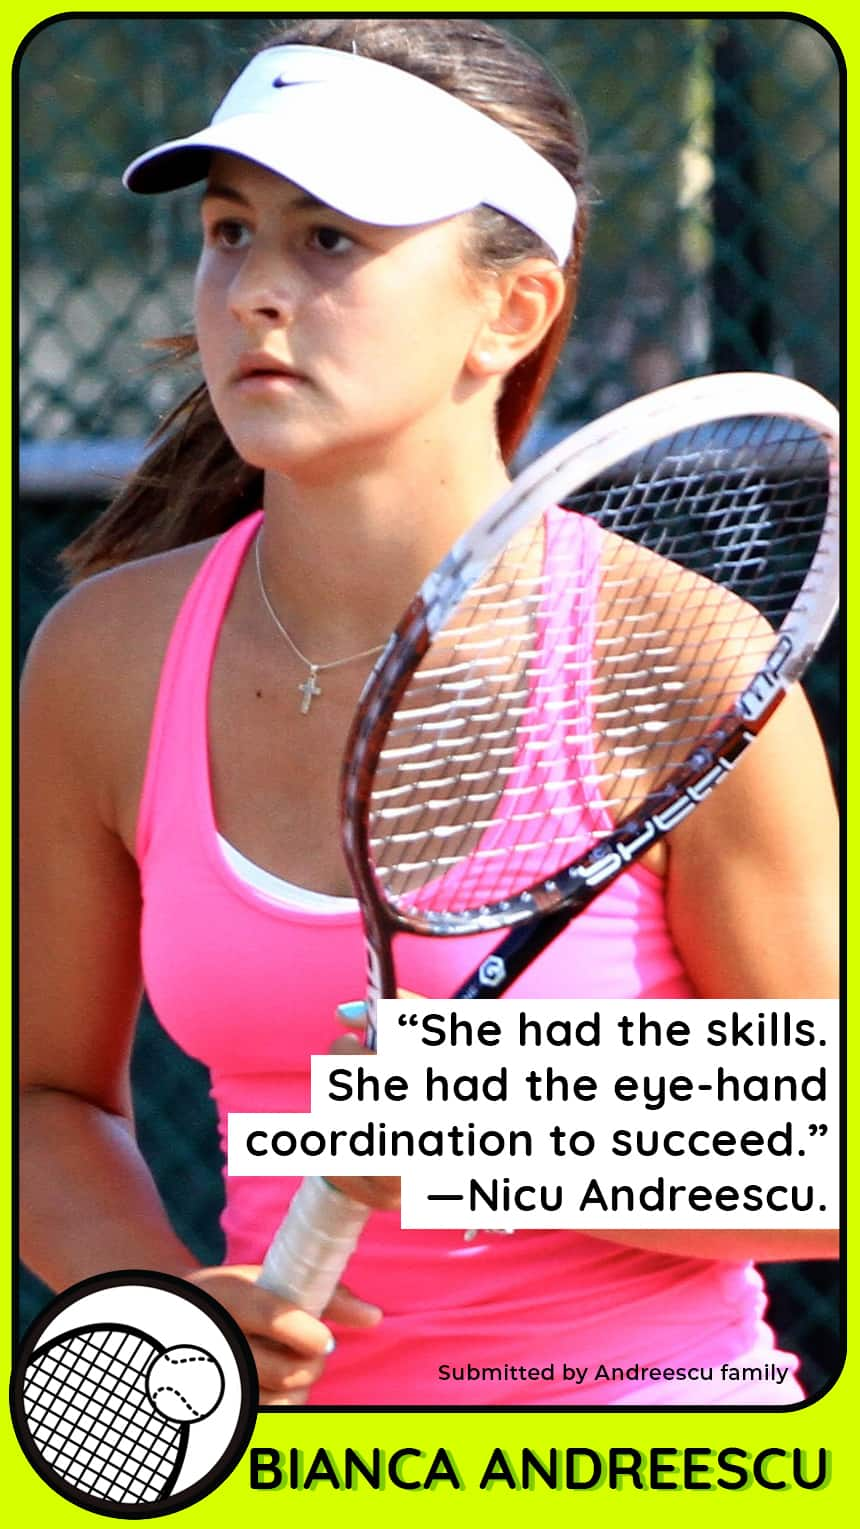 A young female tennis player looks concentrated holding her racquet.